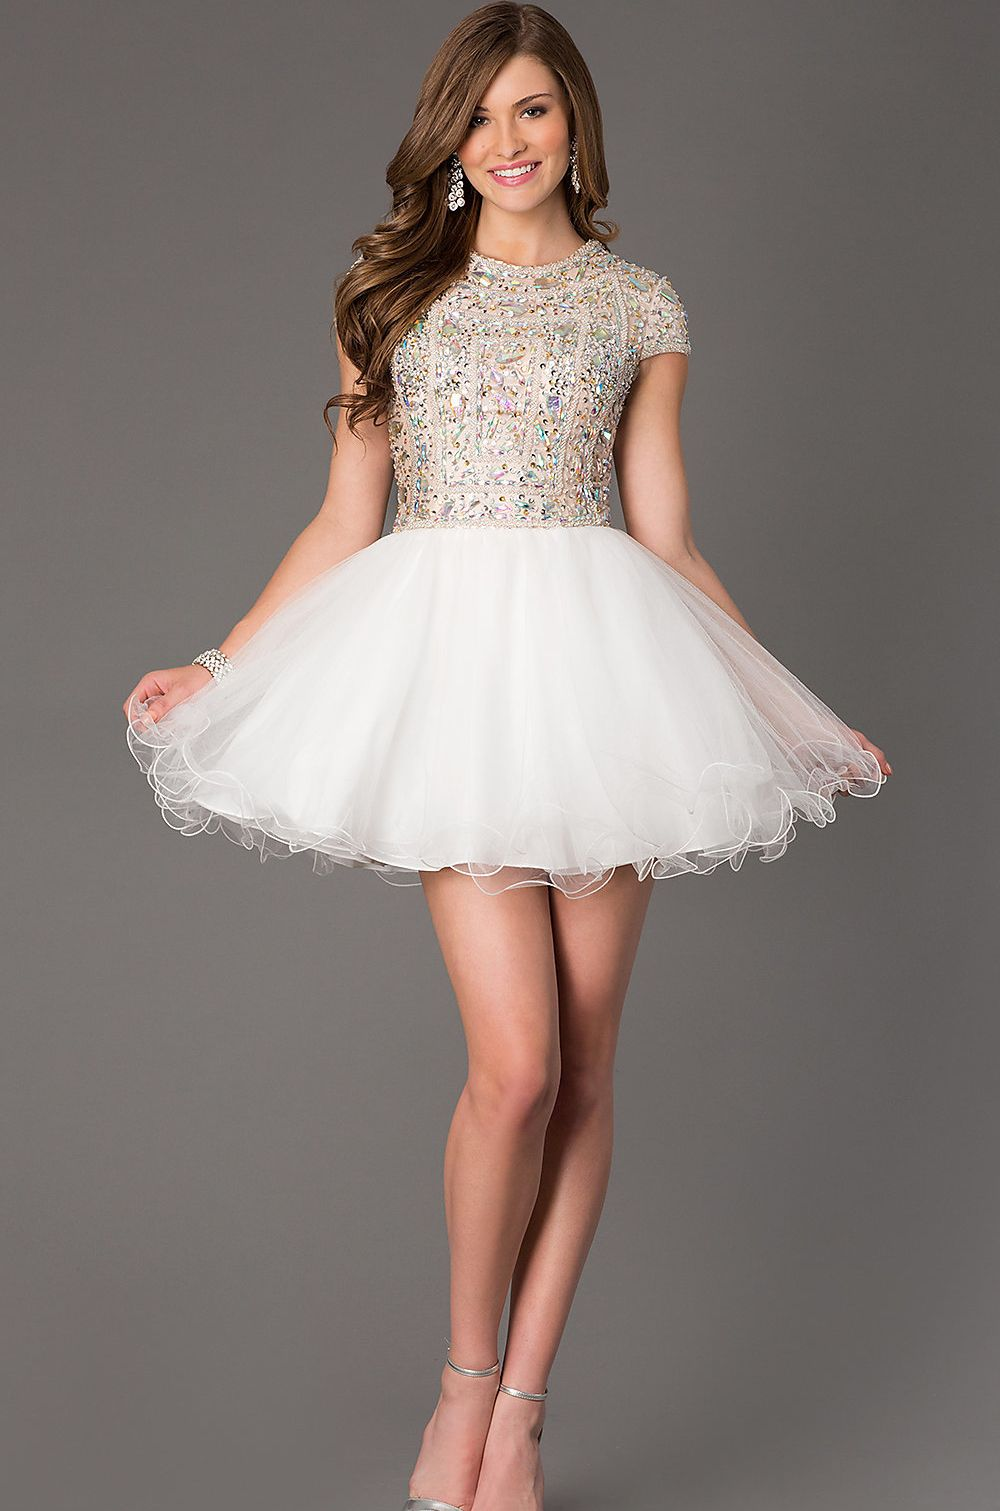 Short tulle fit and flare homecoming dress prom dresses